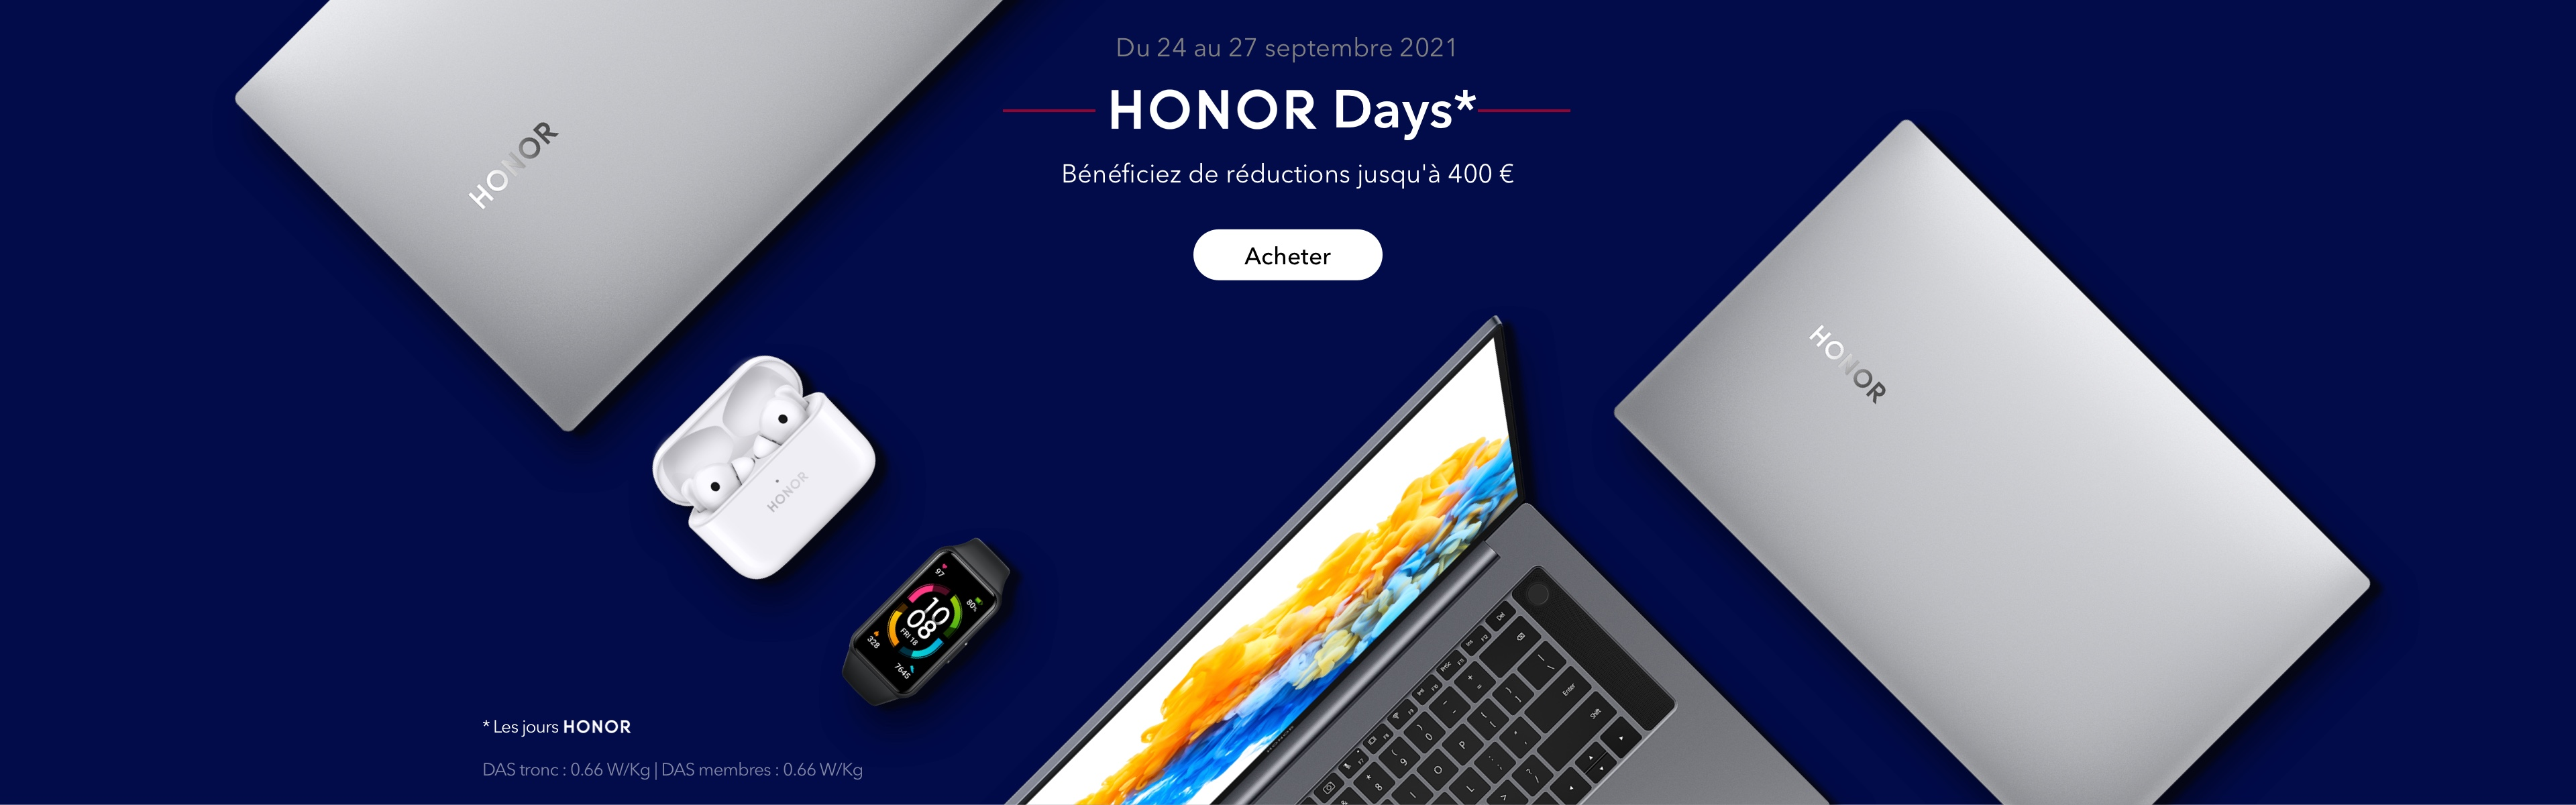 HONOR Promo Page